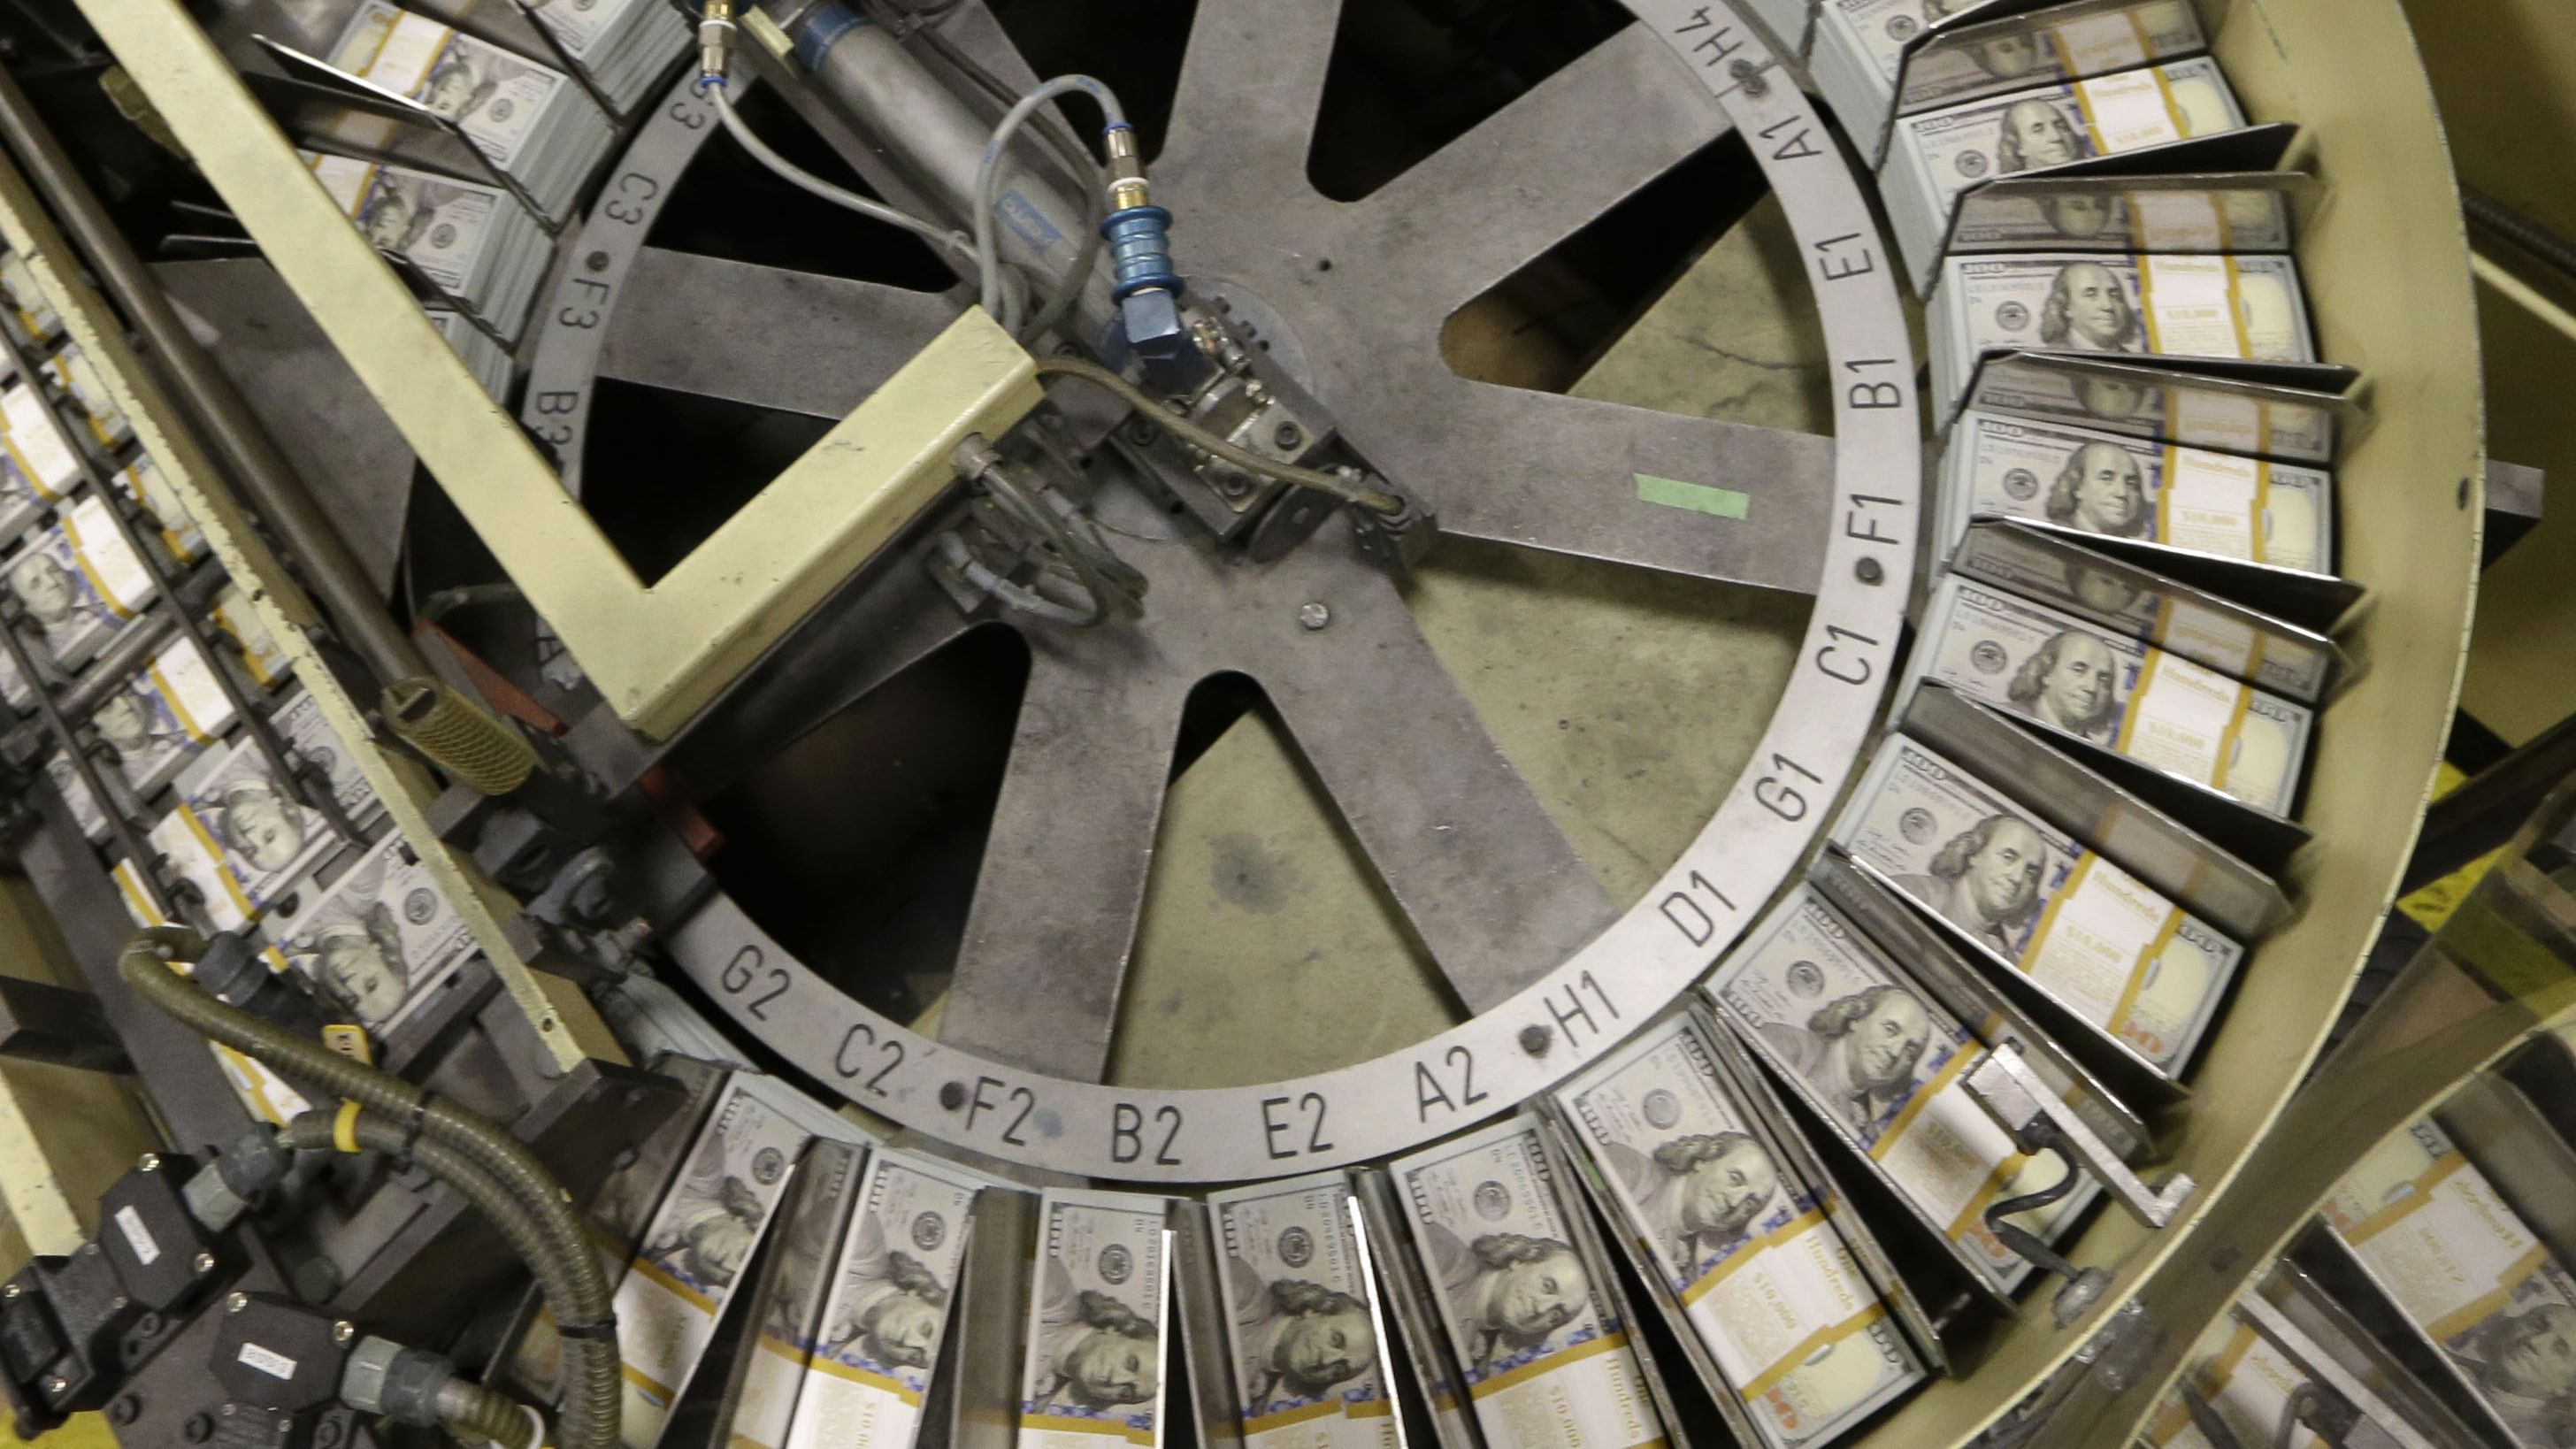 ust cut stacks of $100 bills make their way down the line at the Bureau of Engraving and Printing Western Currency Facility in Fort Worth, Texas, Tuesday, Sept. 24, 2013. (AP Photo/LM Otero)